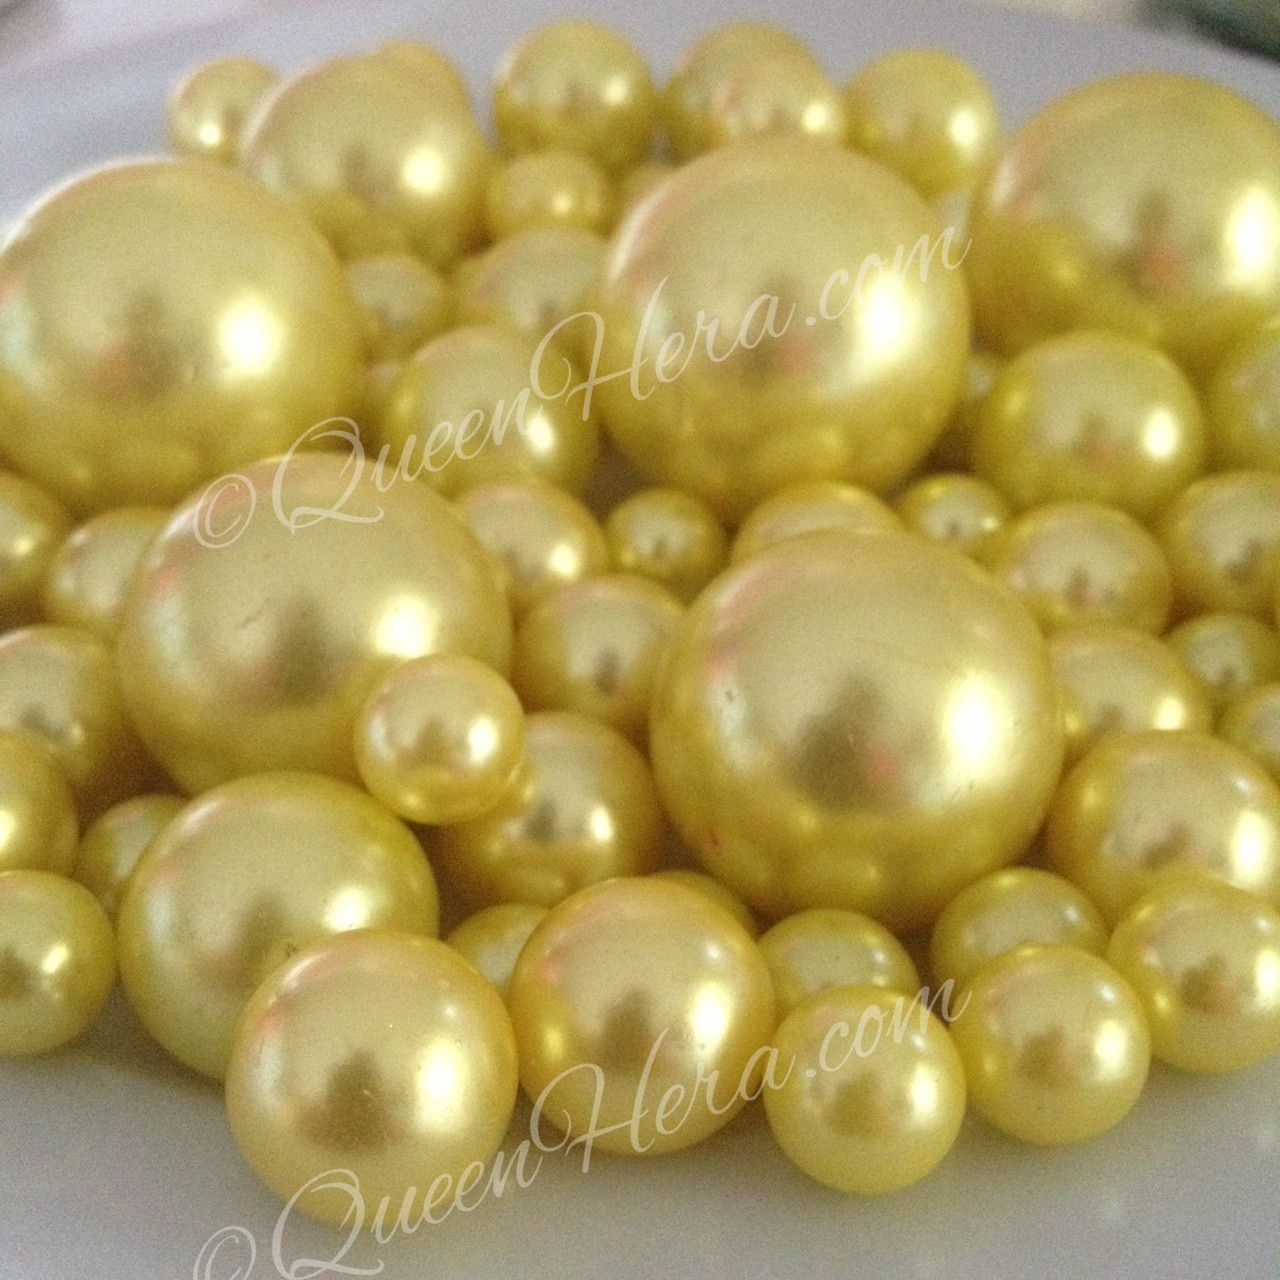 yellow scale pearl subsampling set the shop winterson gold golden pearls false stud editor product with earrings jewellery south in sea upscale crop